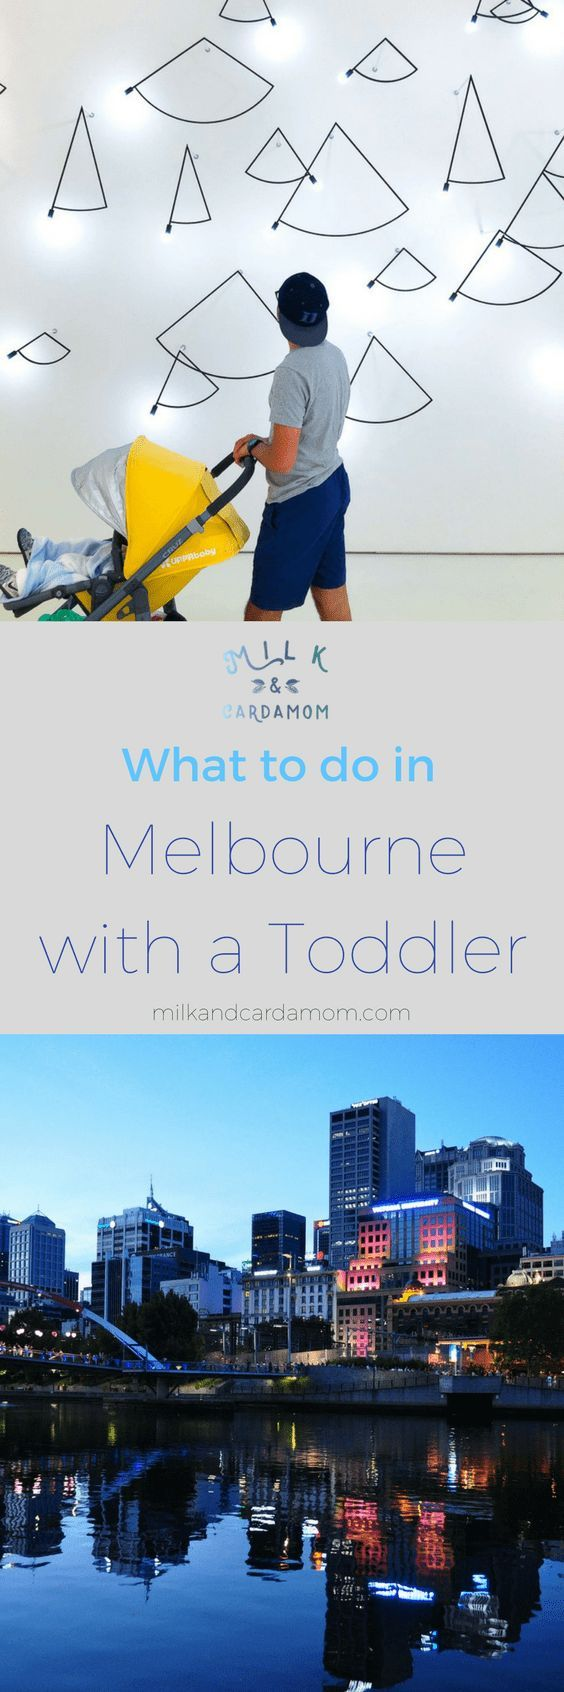 Travelling to Melbourne? Here is what you should do in Melbourne with your toddler! #travel #familytravel #melbourne #wanderlust #toddler #toddlertravel